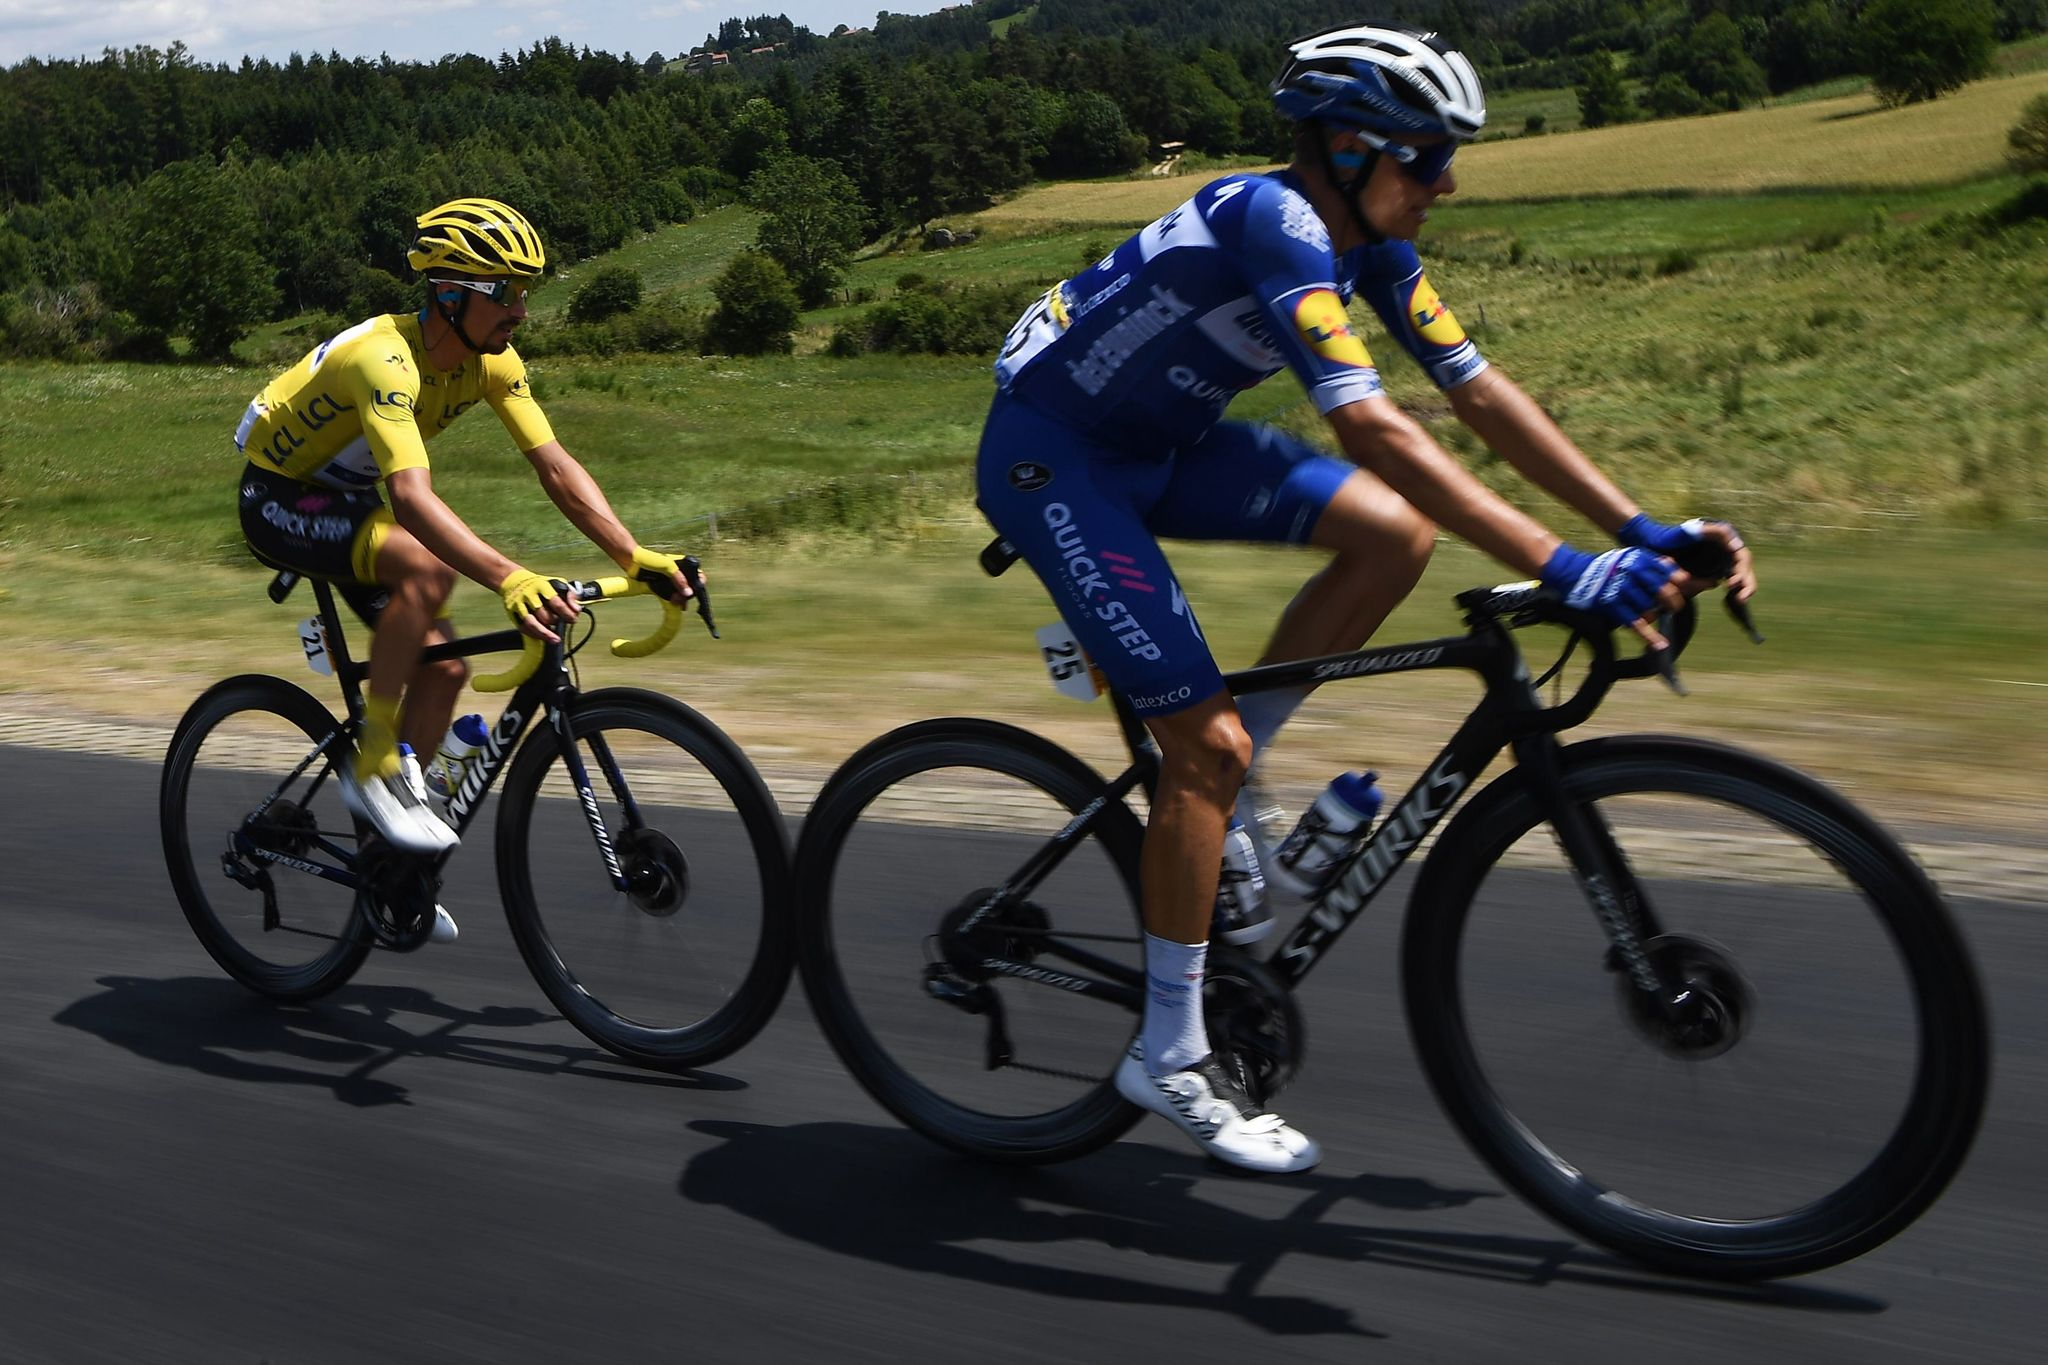 Frances Julian Alaphilippe (L), wearing the overall leaders yellow jersey rides with Spains <HIT>Enric</HIT><HIT>Mas</HIT> during the ninth stage of the 106th edition of the Tour de France cycling race between Saint-Etienne and Brioude, on July 14, 2019. (Photo by Anne-Christine POUJOULAT / AFP)